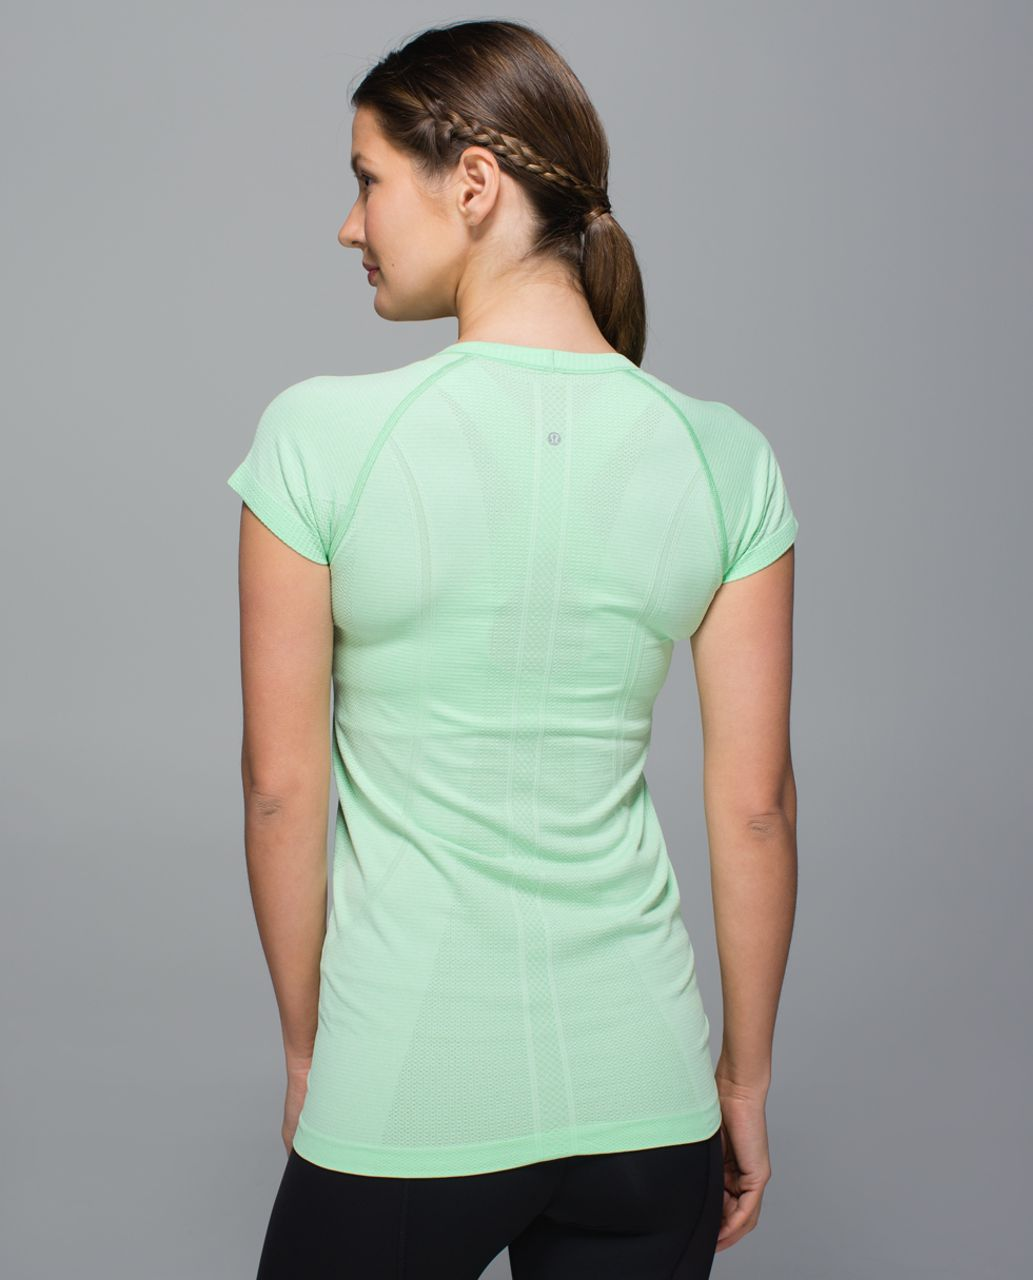 Lululemon Swiftly Tech Short Sleeve Scoop - Heathered Pistachio